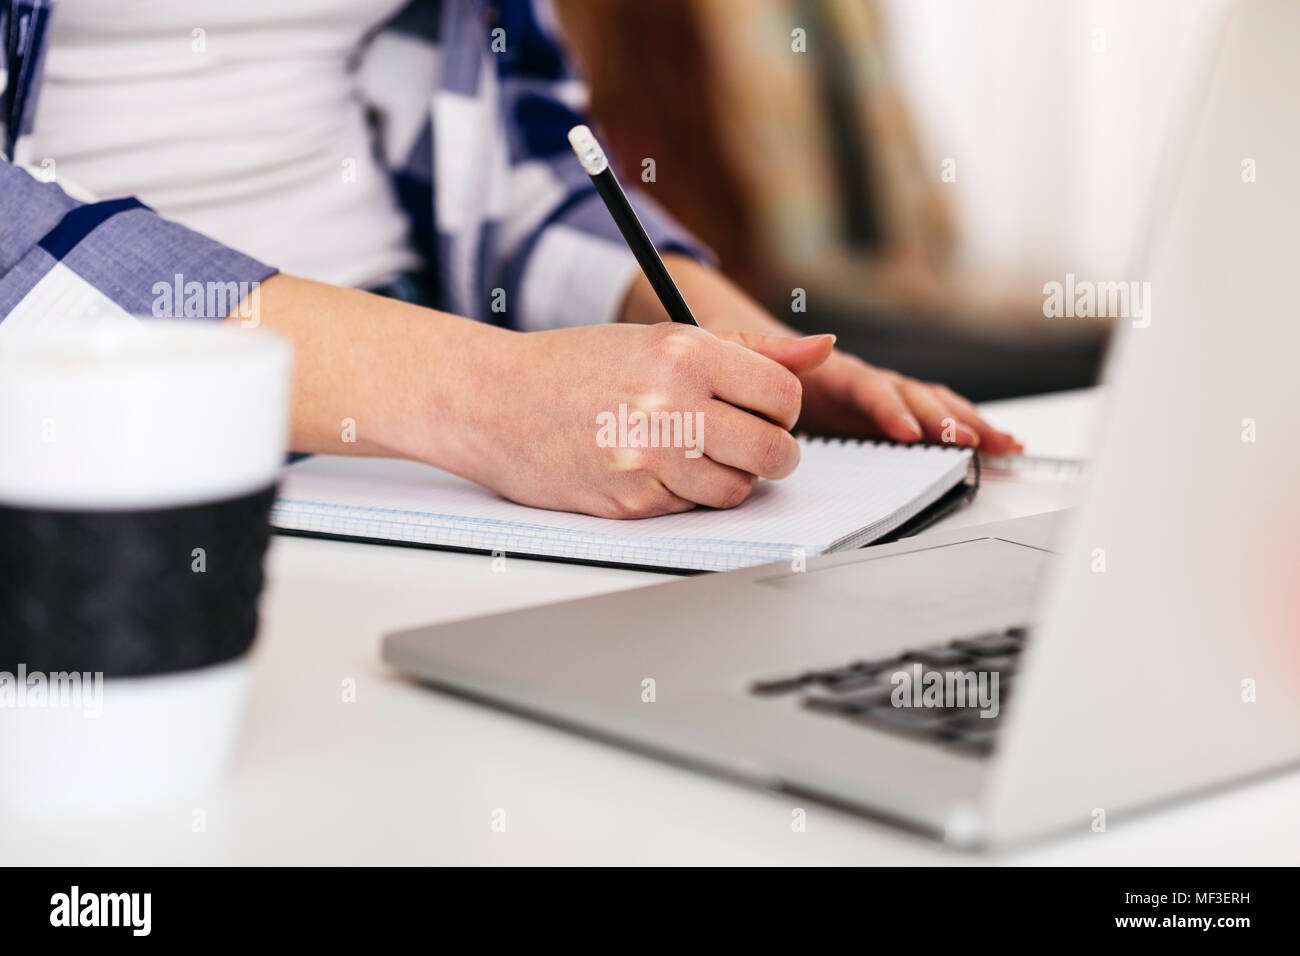 Close-up of woman with laptop taking notes at desk - Stock Image